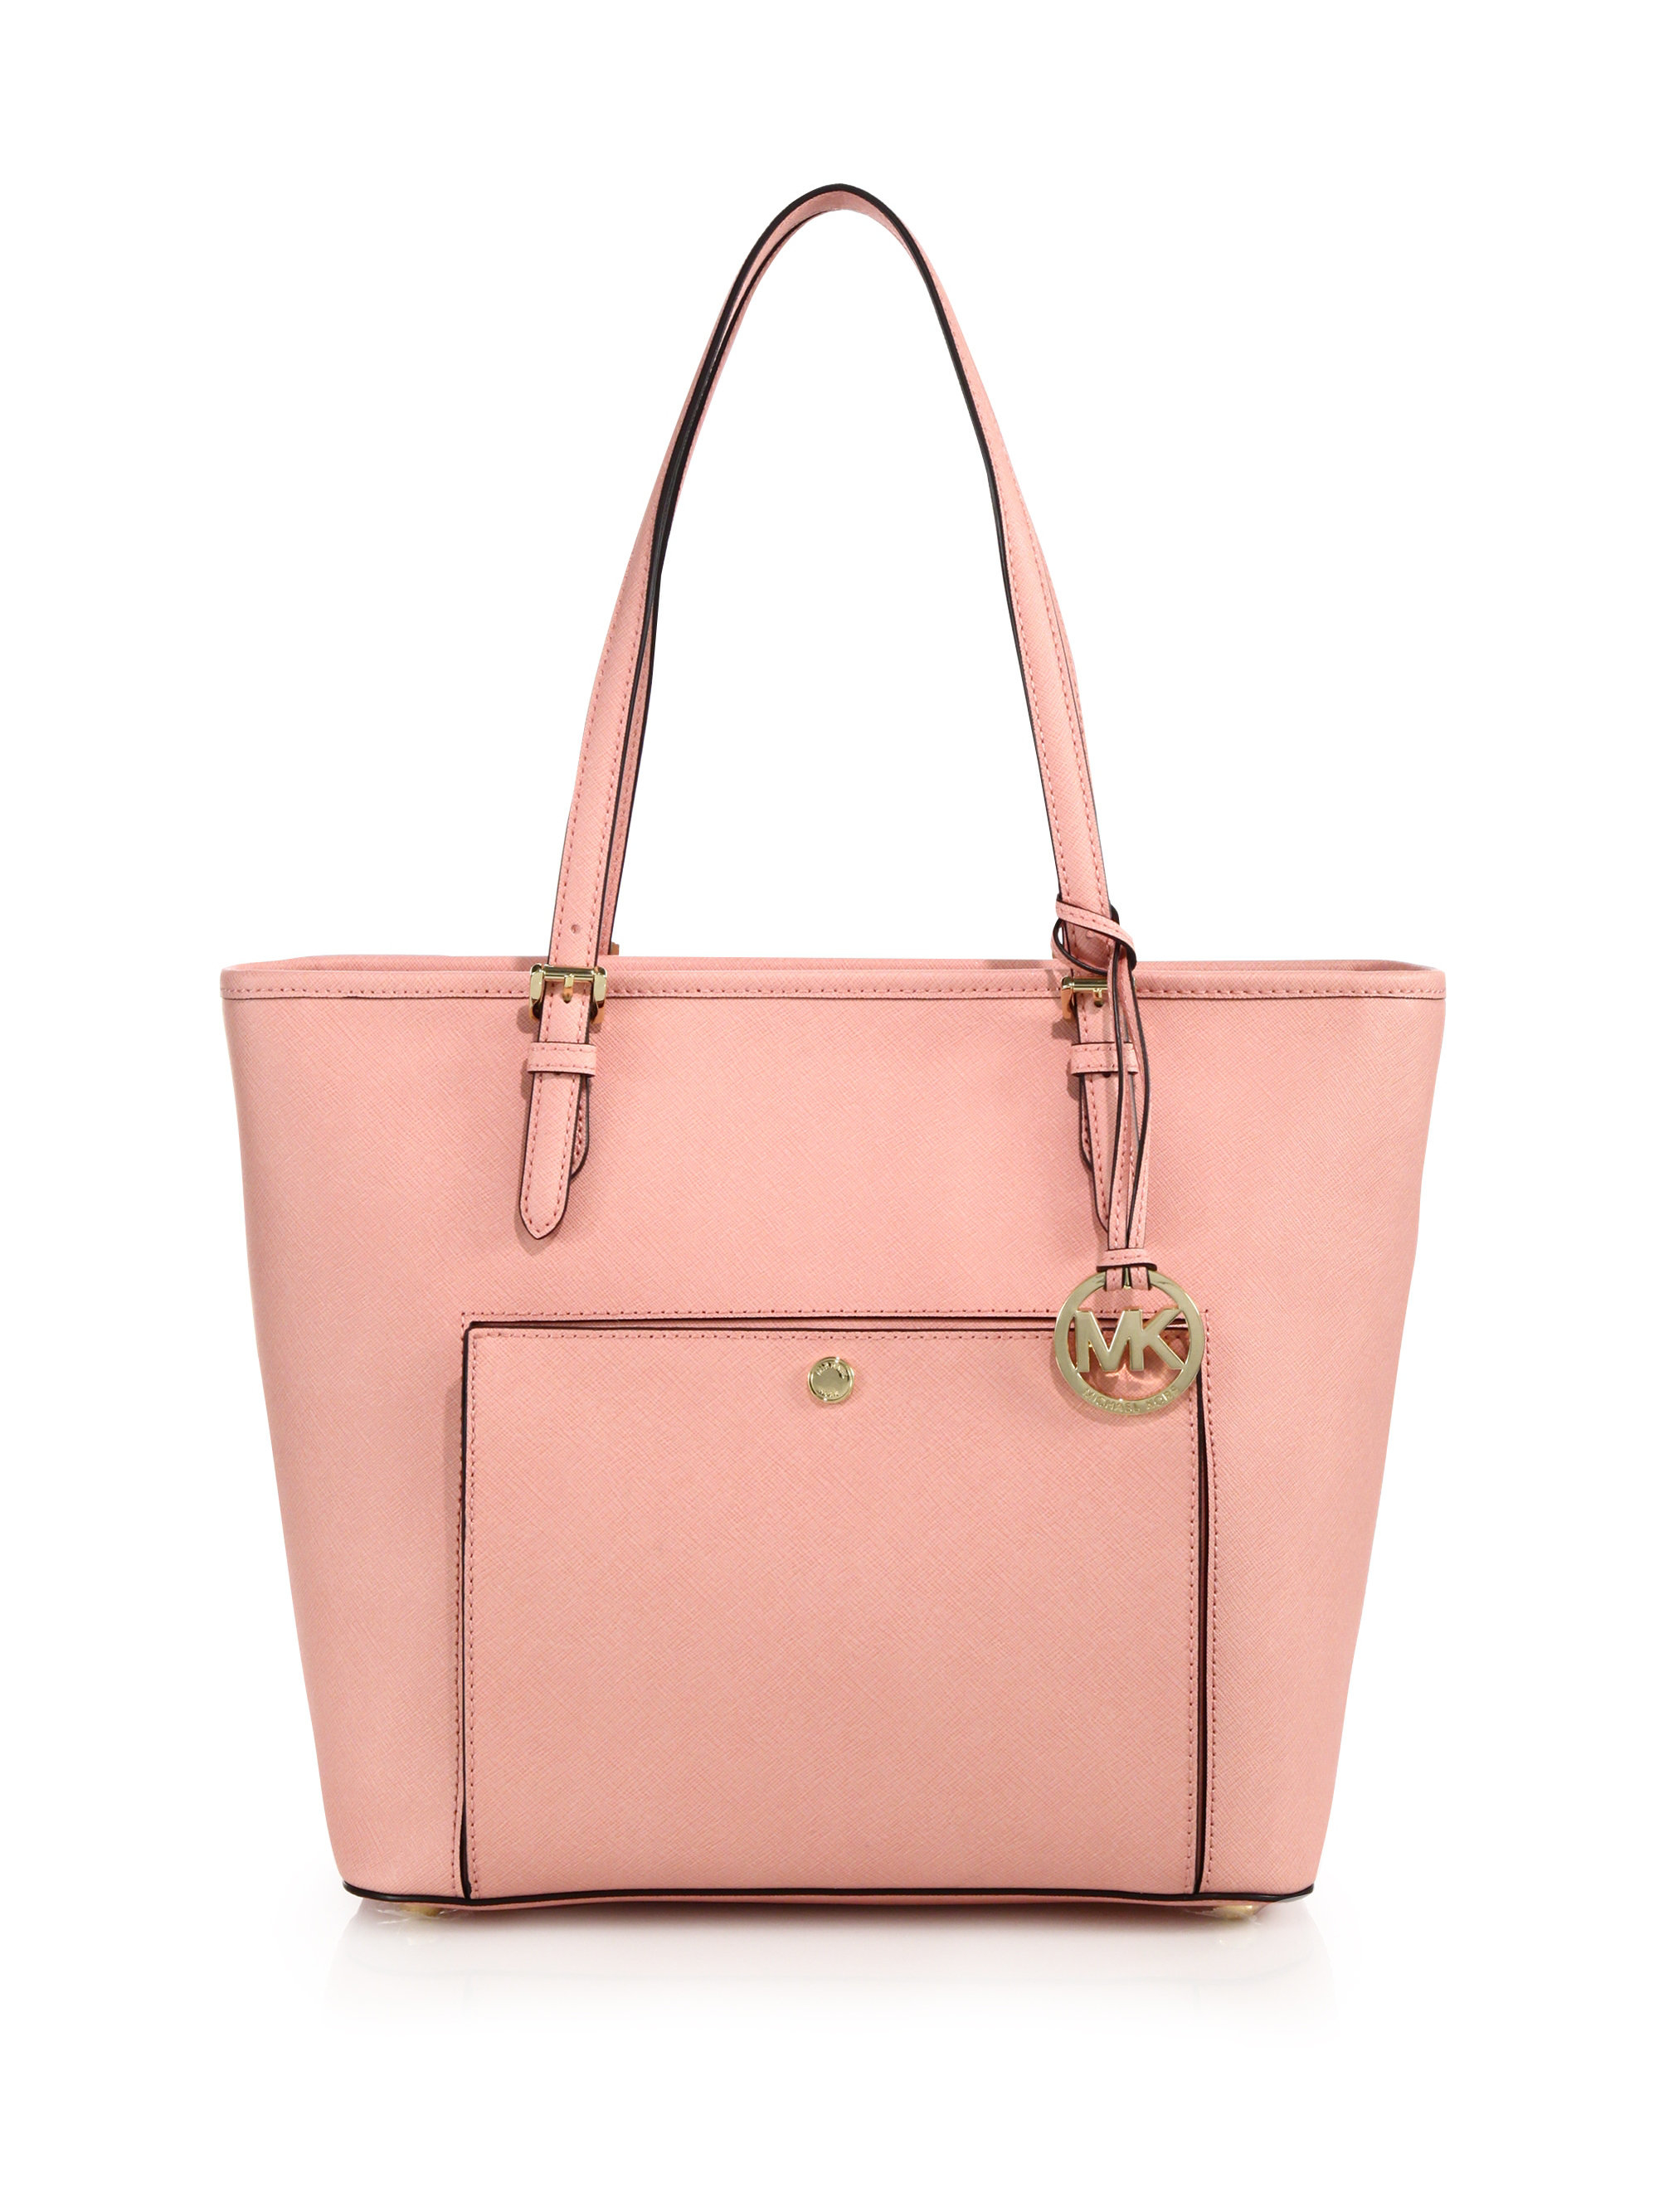 michael kors large everyday tote in pink pale pink lyst. Black Bedroom Furniture Sets. Home Design Ideas